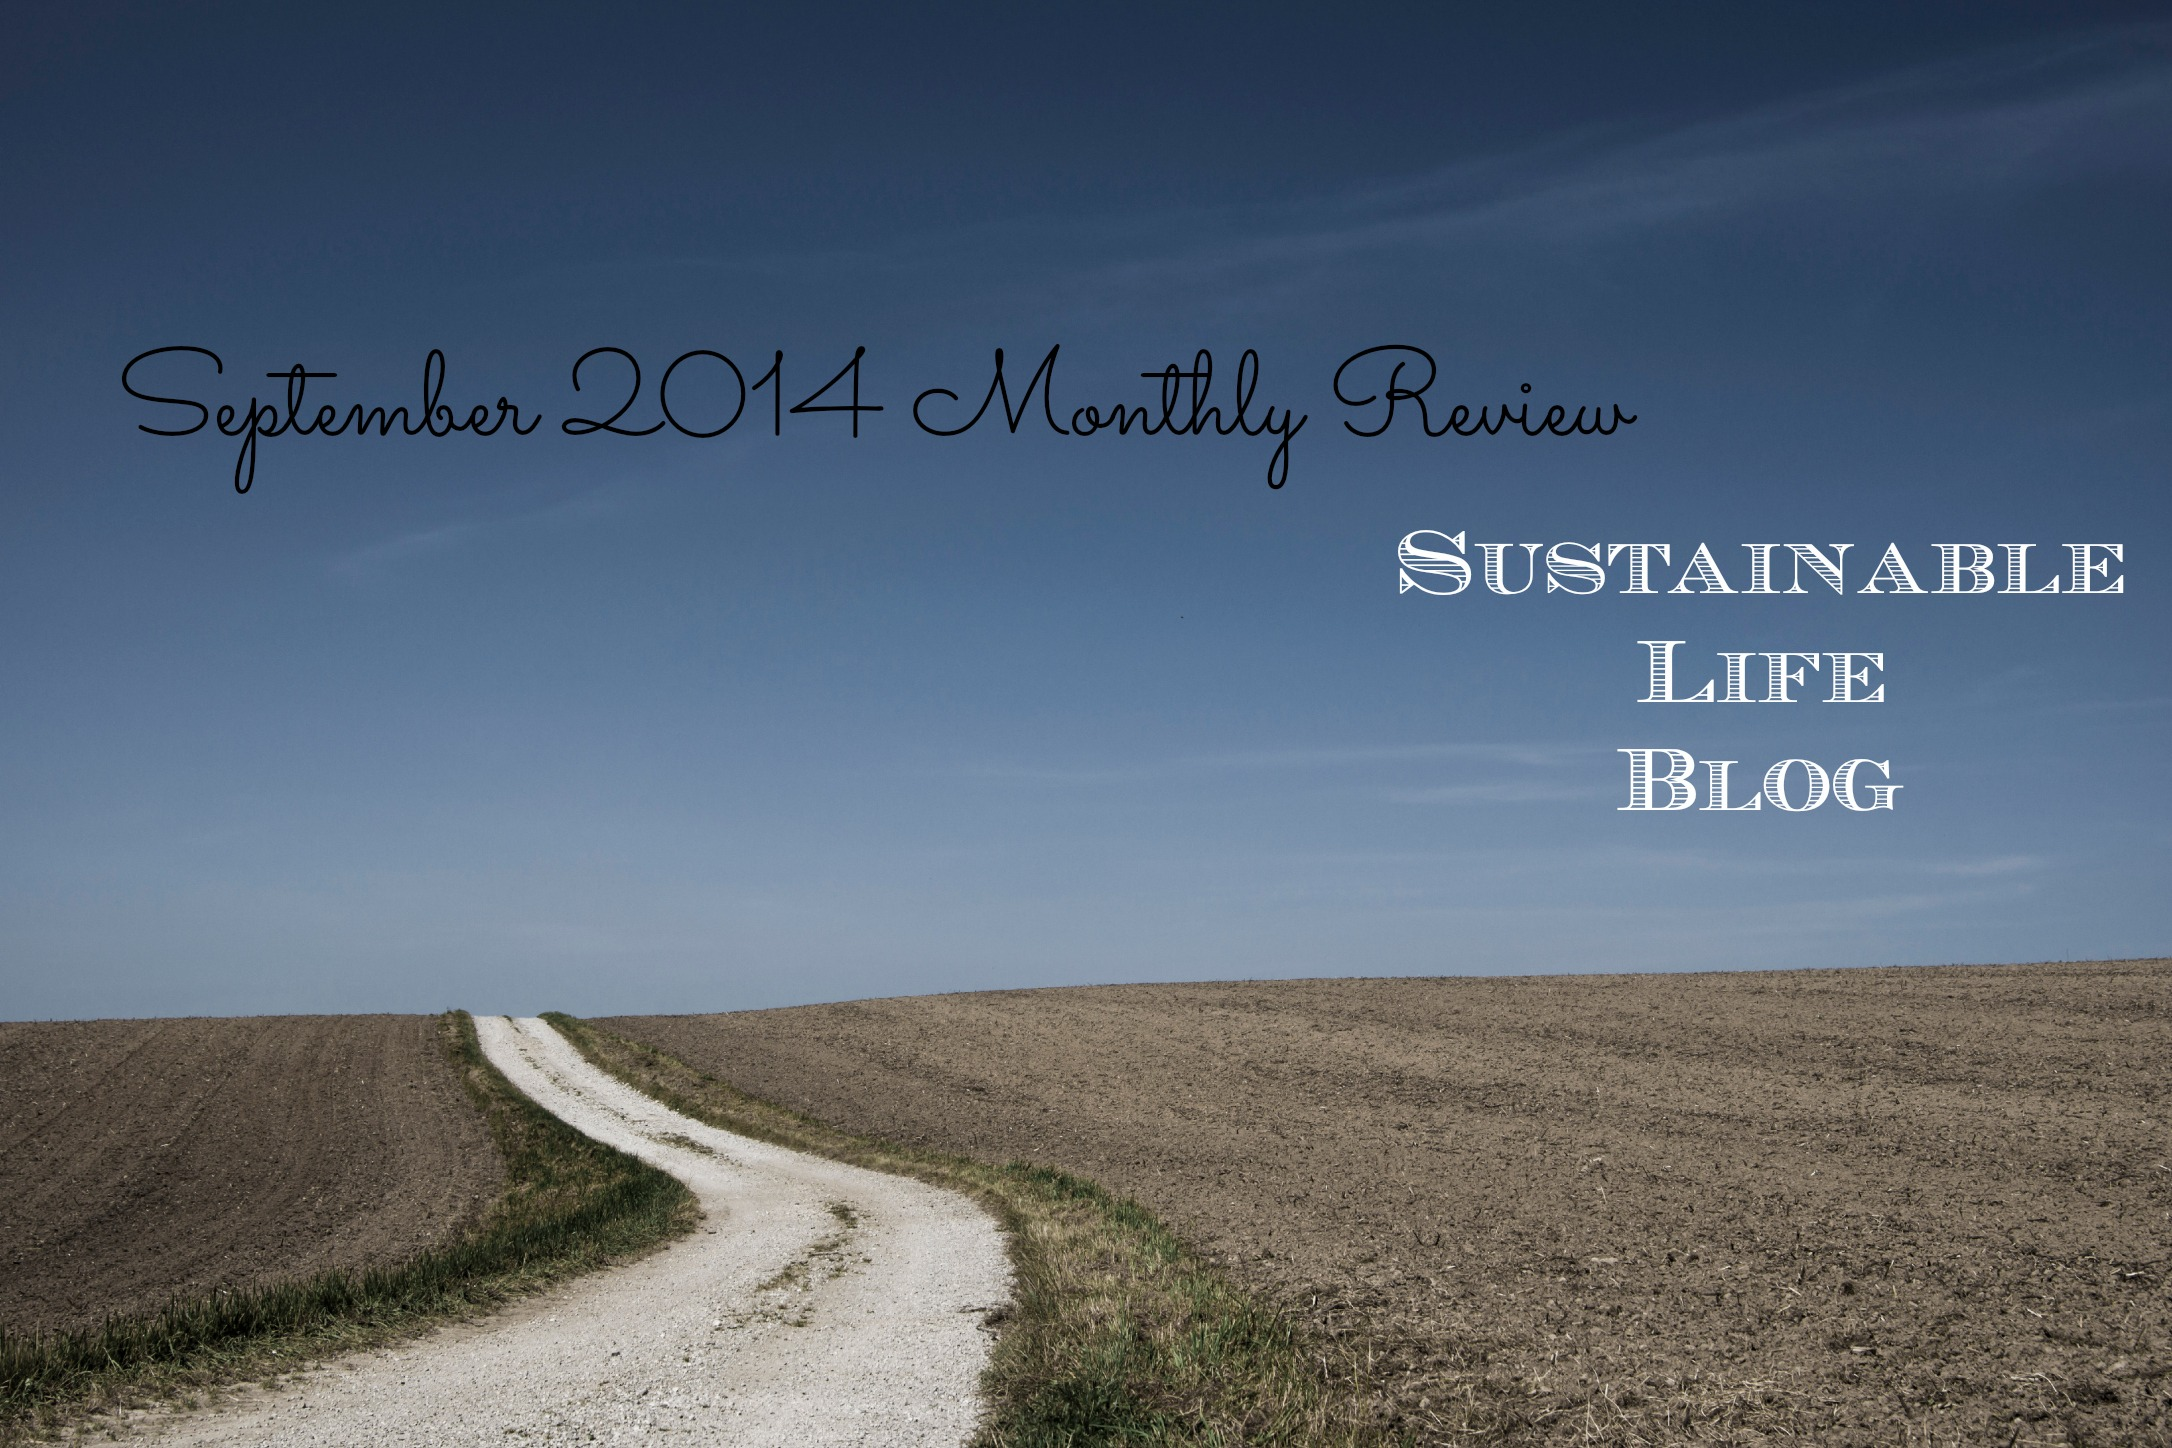 September 2014 Monthly Review